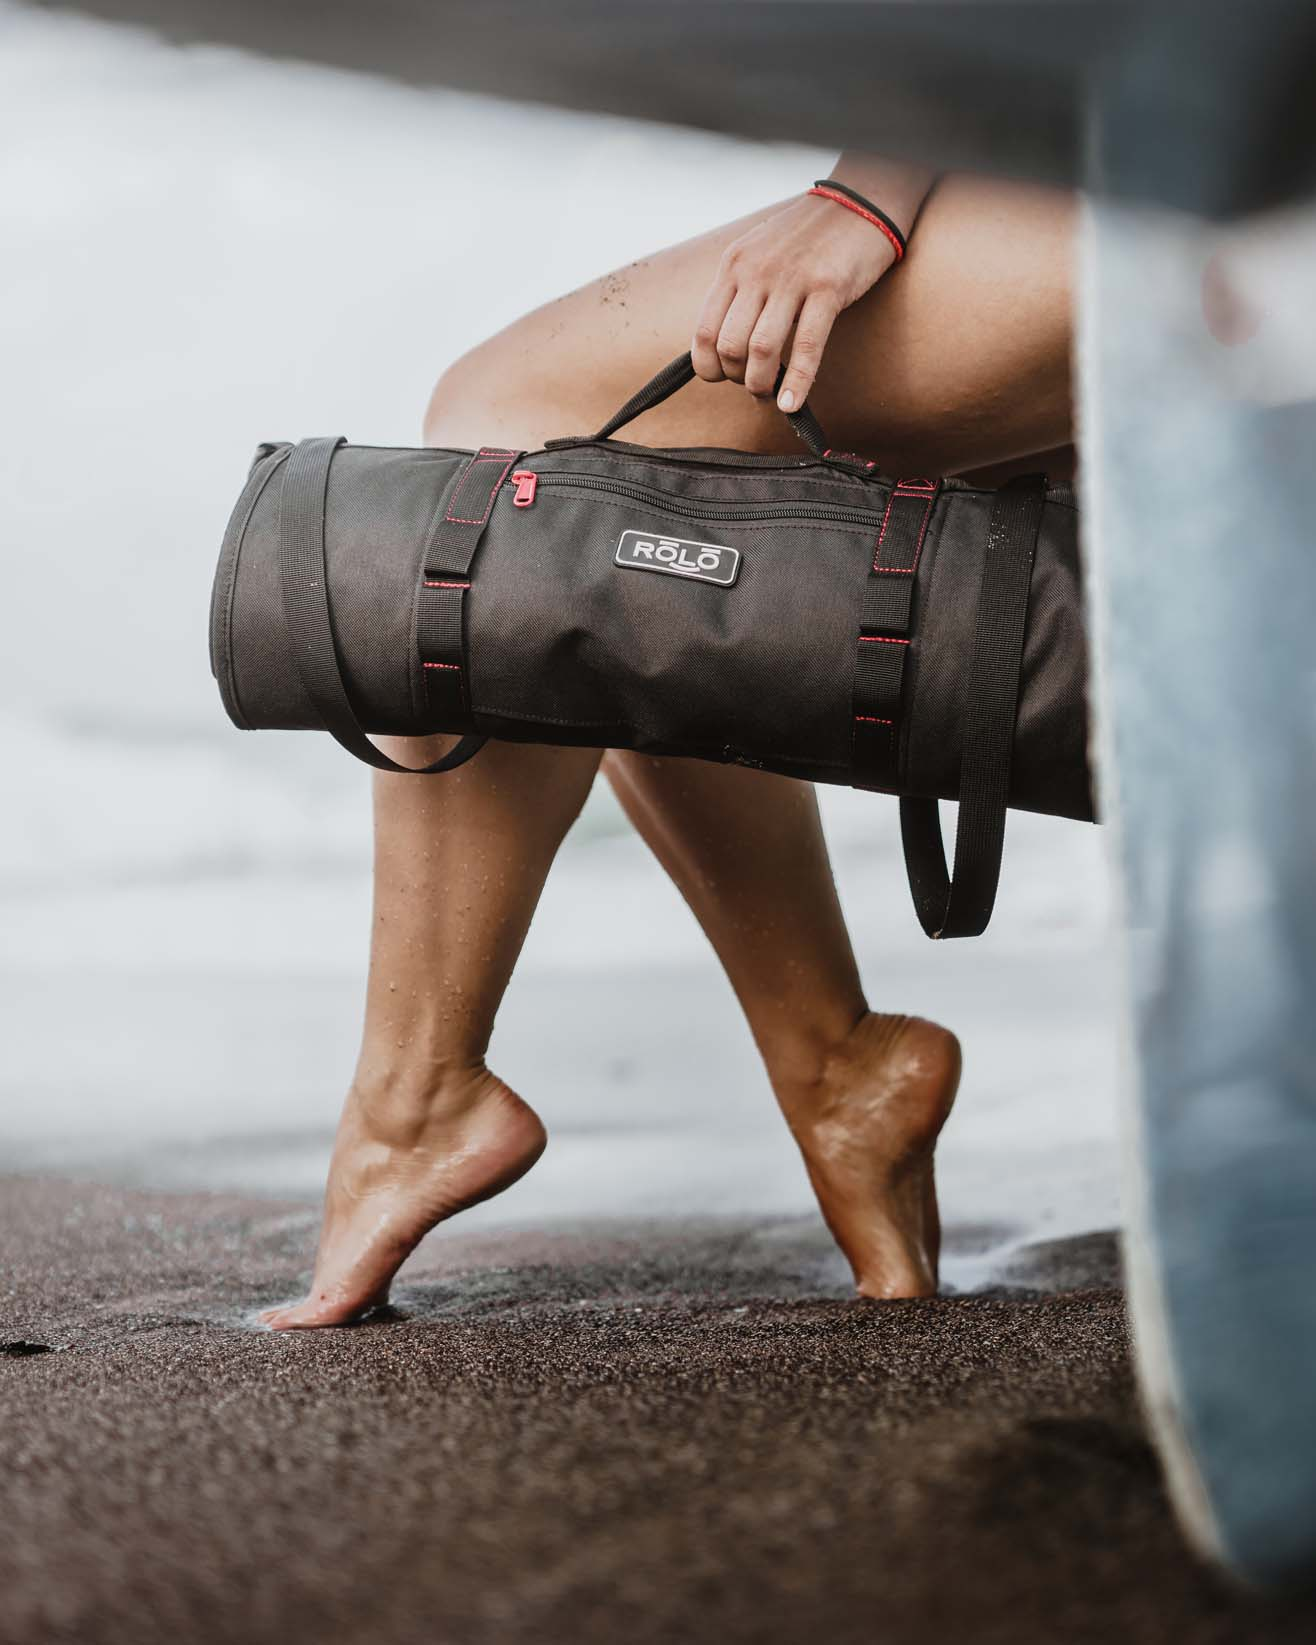 Attaches to a backpack, no suitcase required